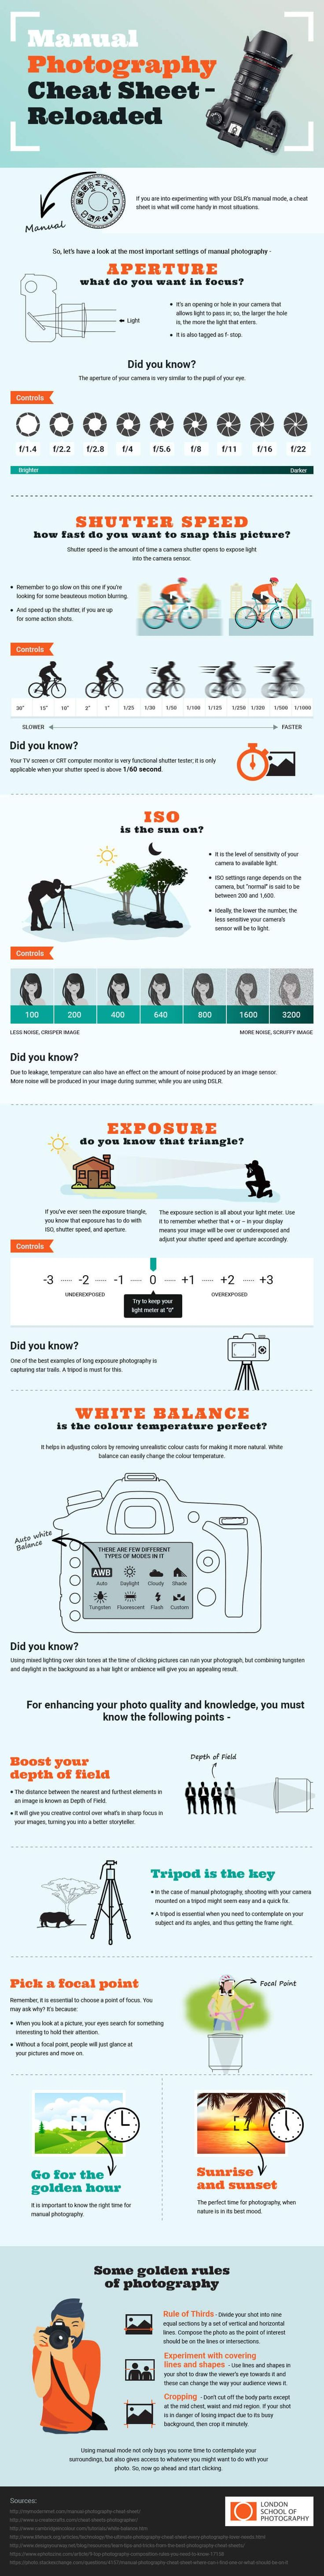 Learn how to shoot in manual mode with these simple tips. Easy to understand directions and videos will help you get started today!